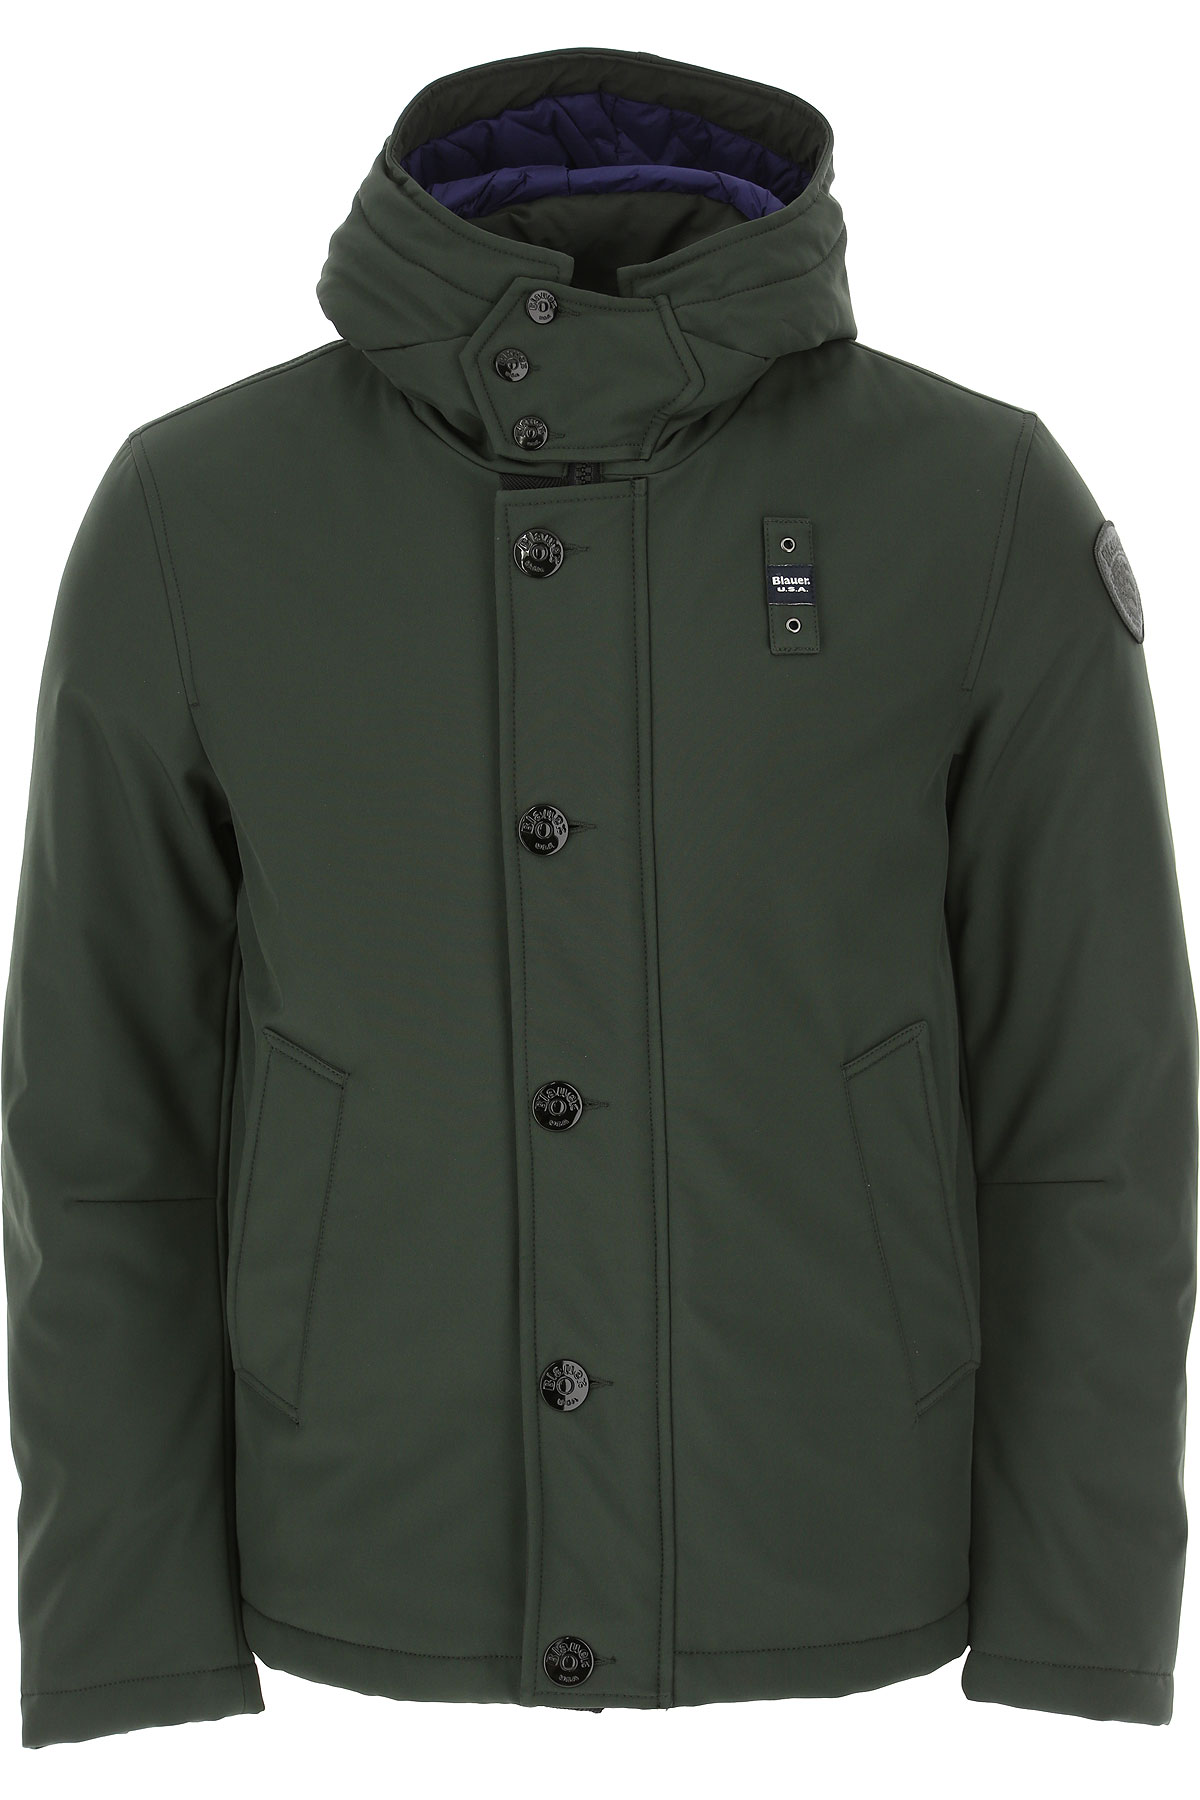 Blauer Jacket for Men On Sale, Forest Green, polyester, 2019, L M S XL